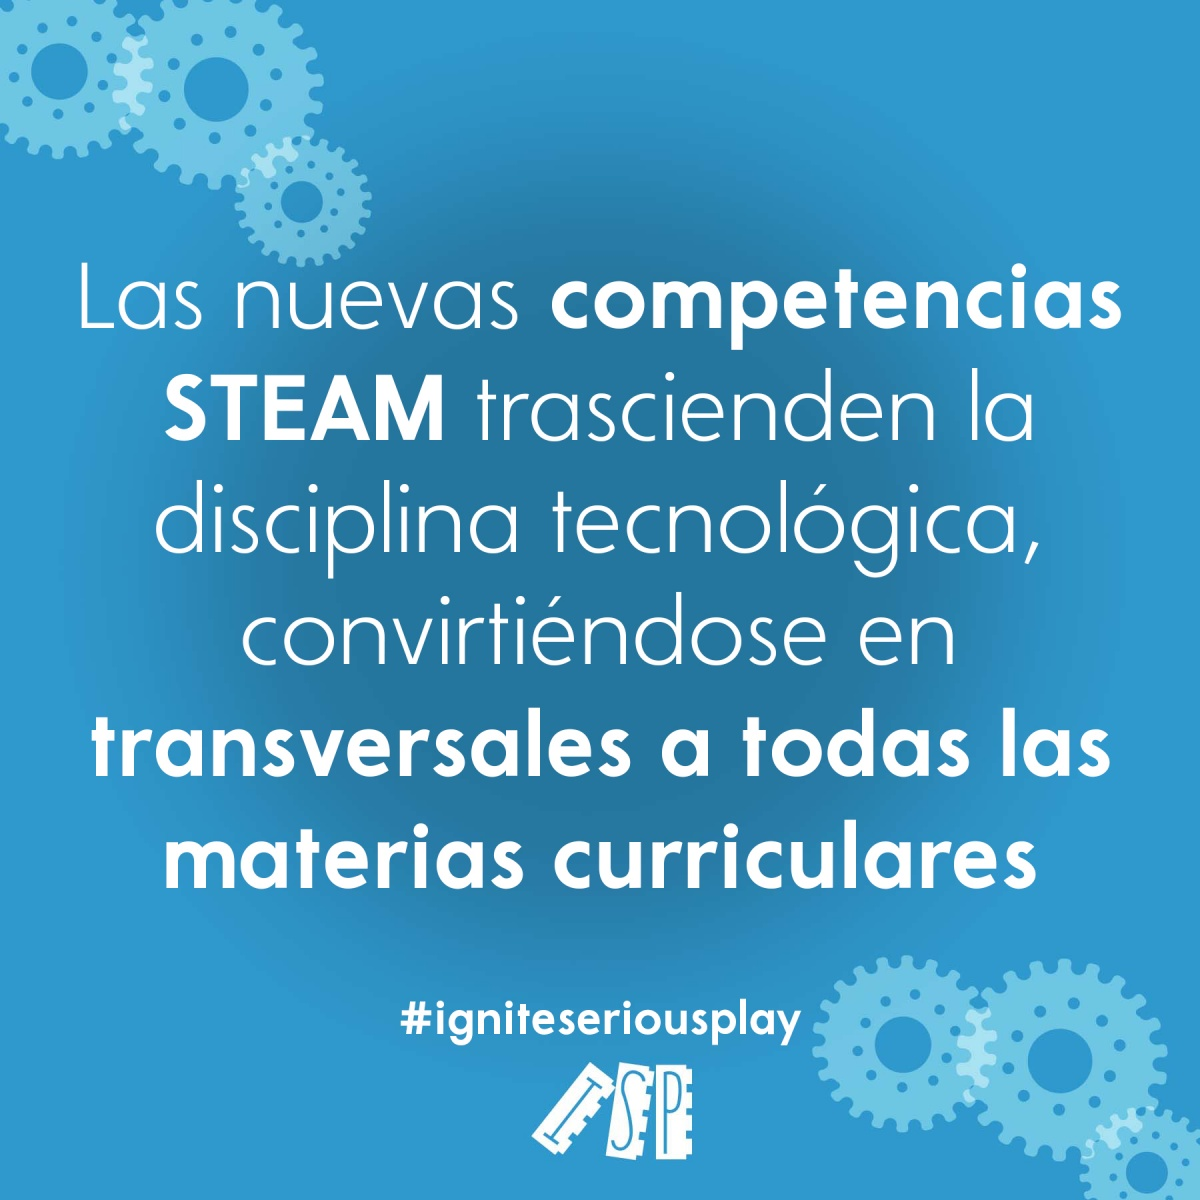 Competencias STEAM transversales